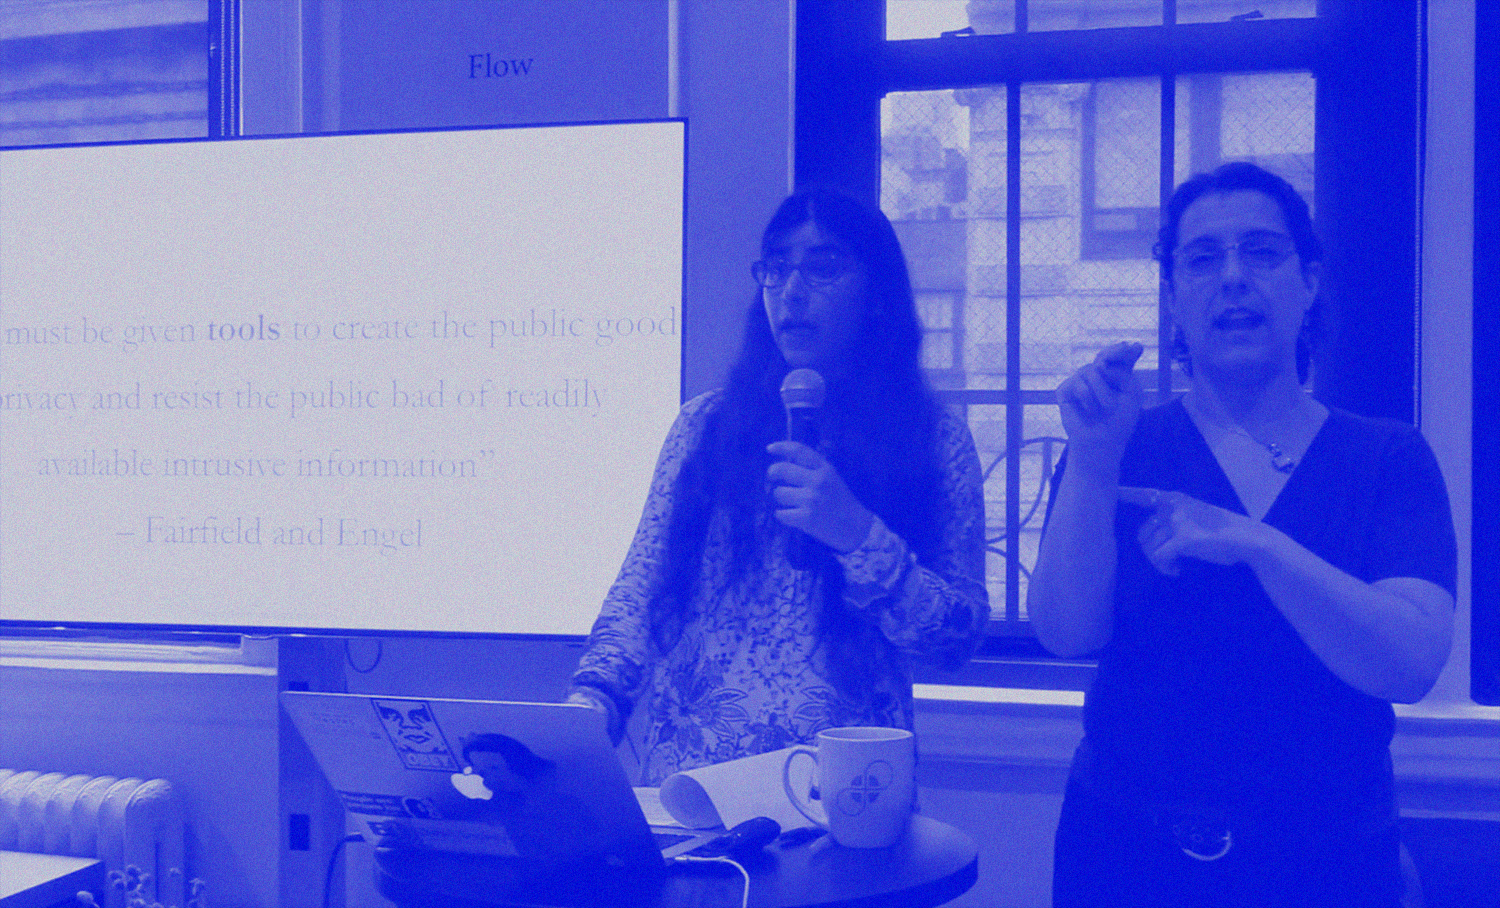 photo of person with long hair speaking into microphone and a sign-language interpreter signing the presentation for the audience.